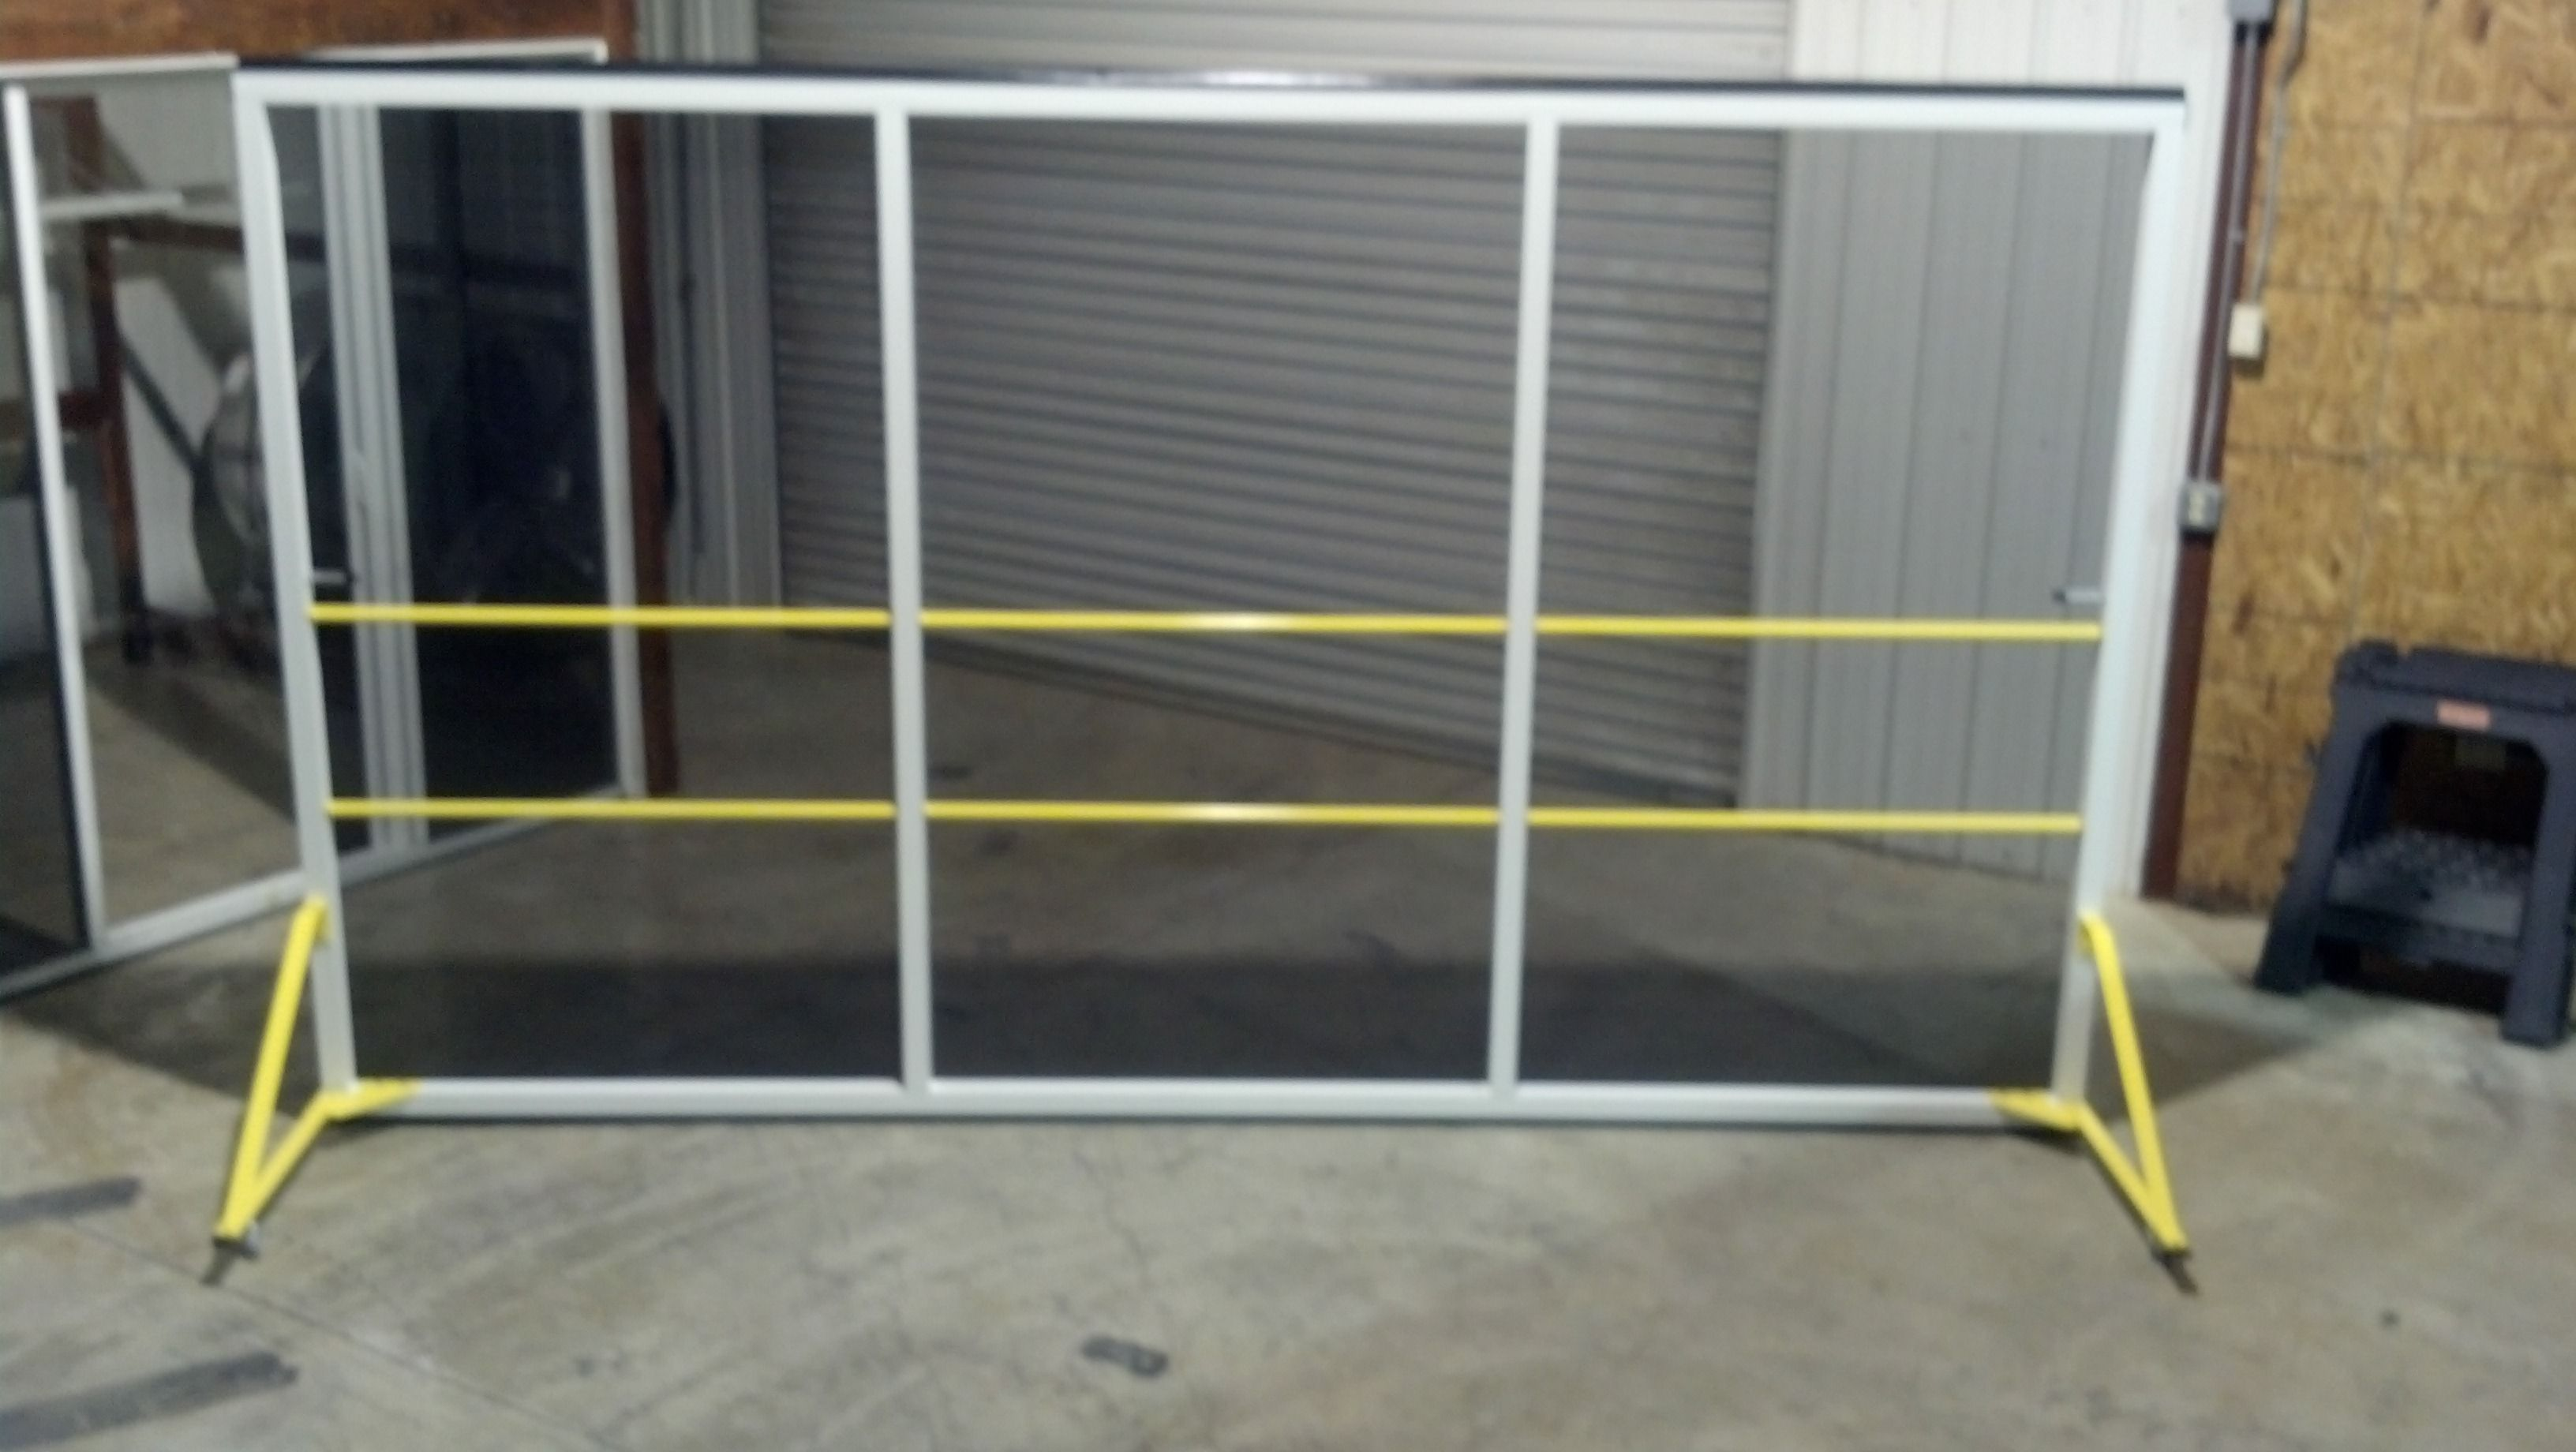 Rollaround Screens For Rollup Warehouse Doors From Advanced Screenworks, LLC